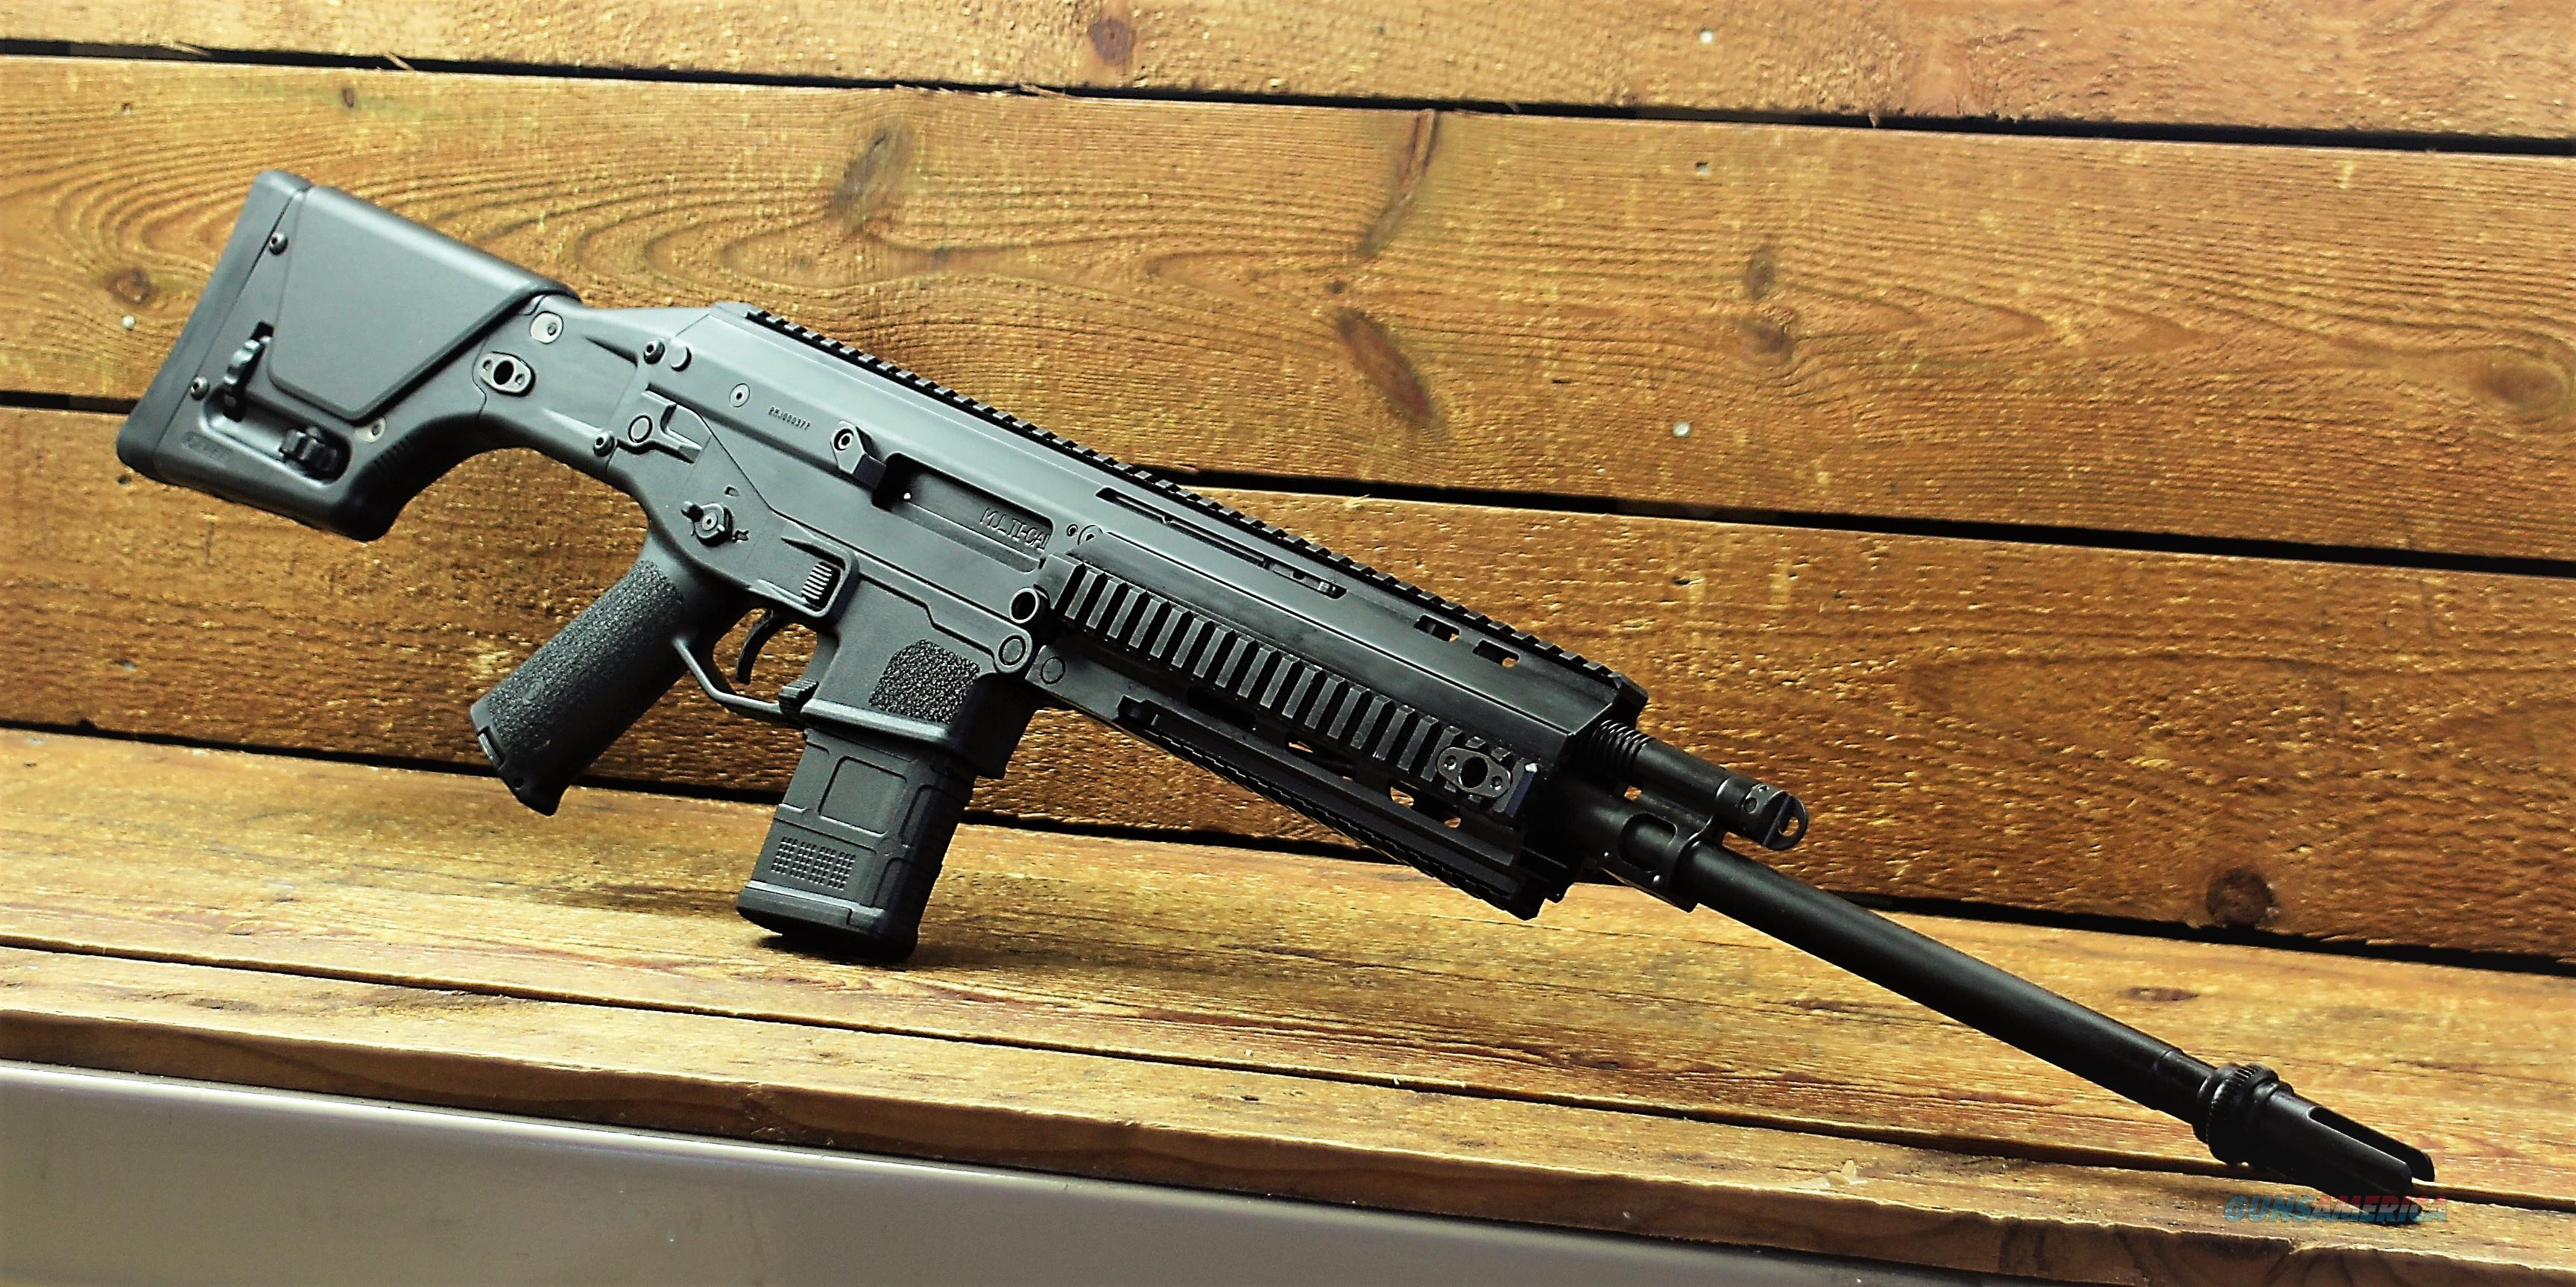 EASY PAY $130 90958 Layaway Bushmaster Basic ACR DMR designated marksman rifle 5.56 NATO   20 Rounds Magpul PRS2 Stock Bushmaster Adaptive Combat Rifle, ACR DMR,  was developed for the military.  Designated Marksman Rifle   Magpul PRS2 P  Guns > Rifles > Bushmaster Rifles > Complete Rifles